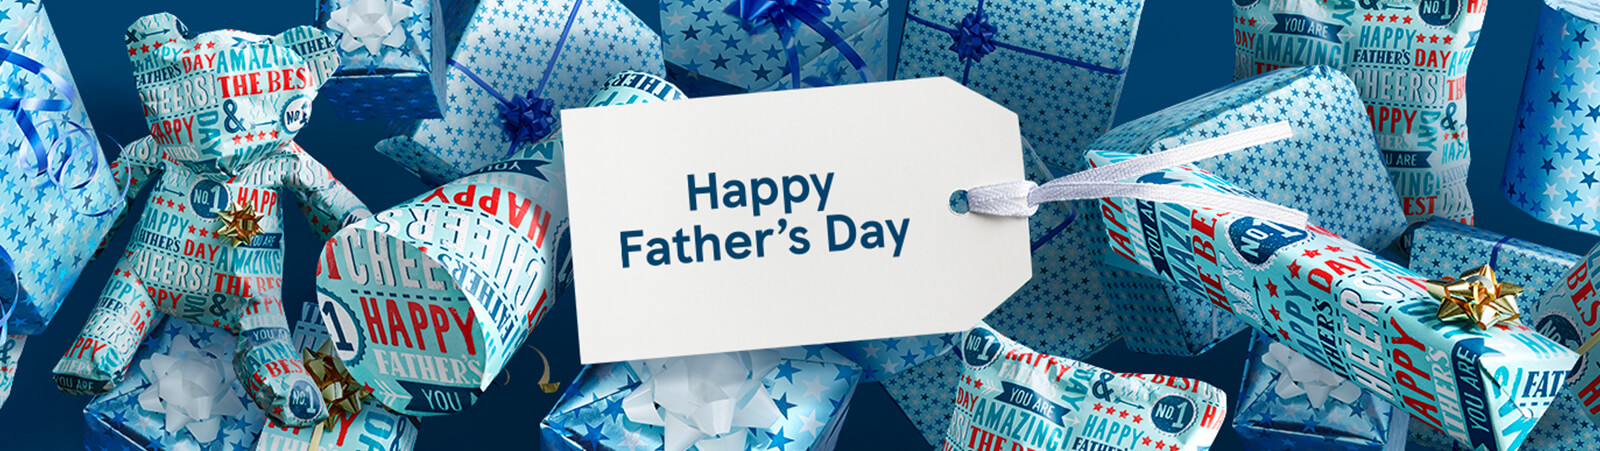 Father's Day 2019 is on Sunday 16 June